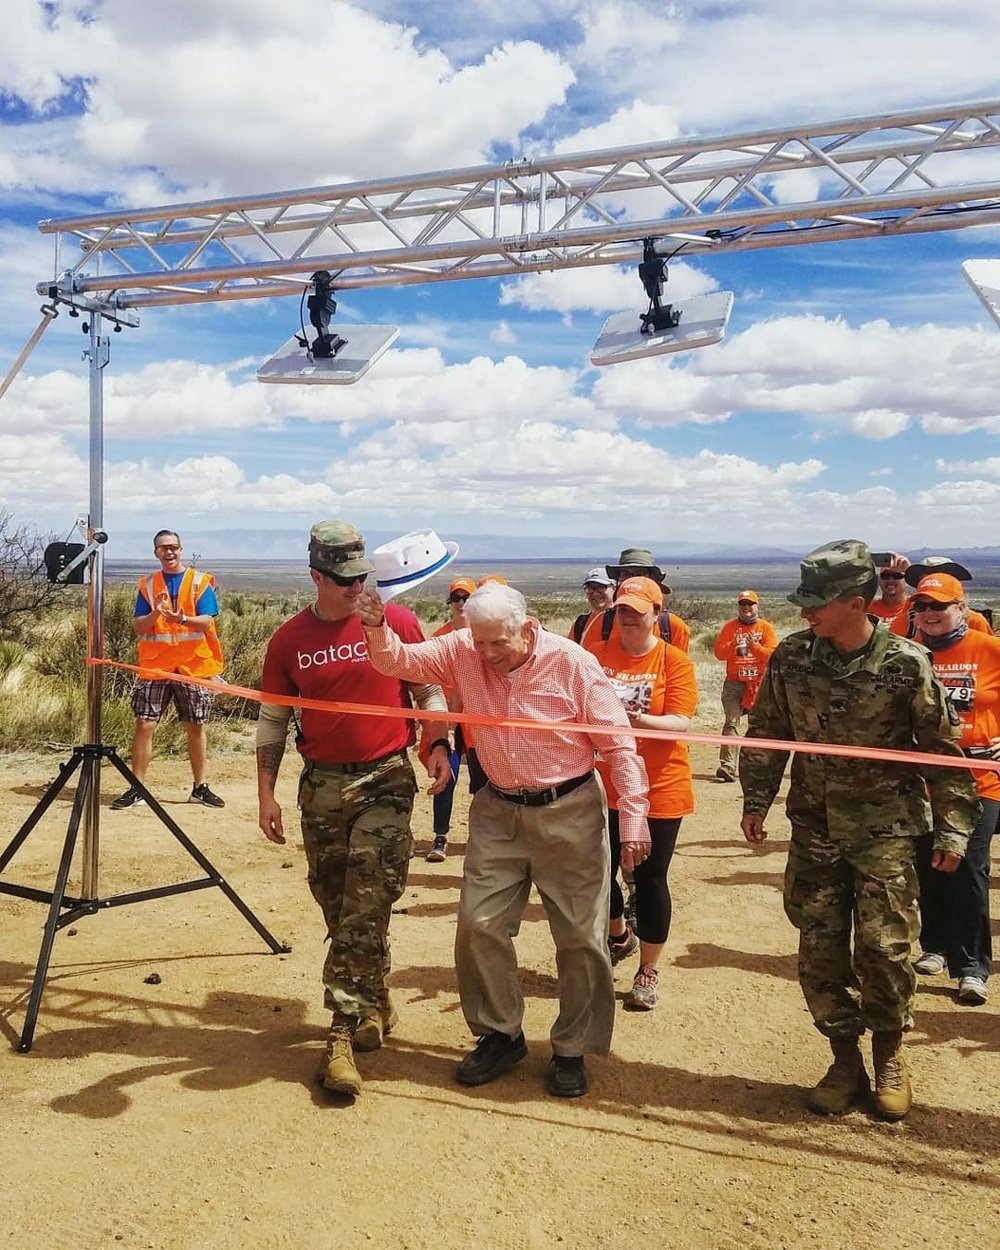 Colonel beverly skardon crosses his personal finish line at the bataan memorial death march